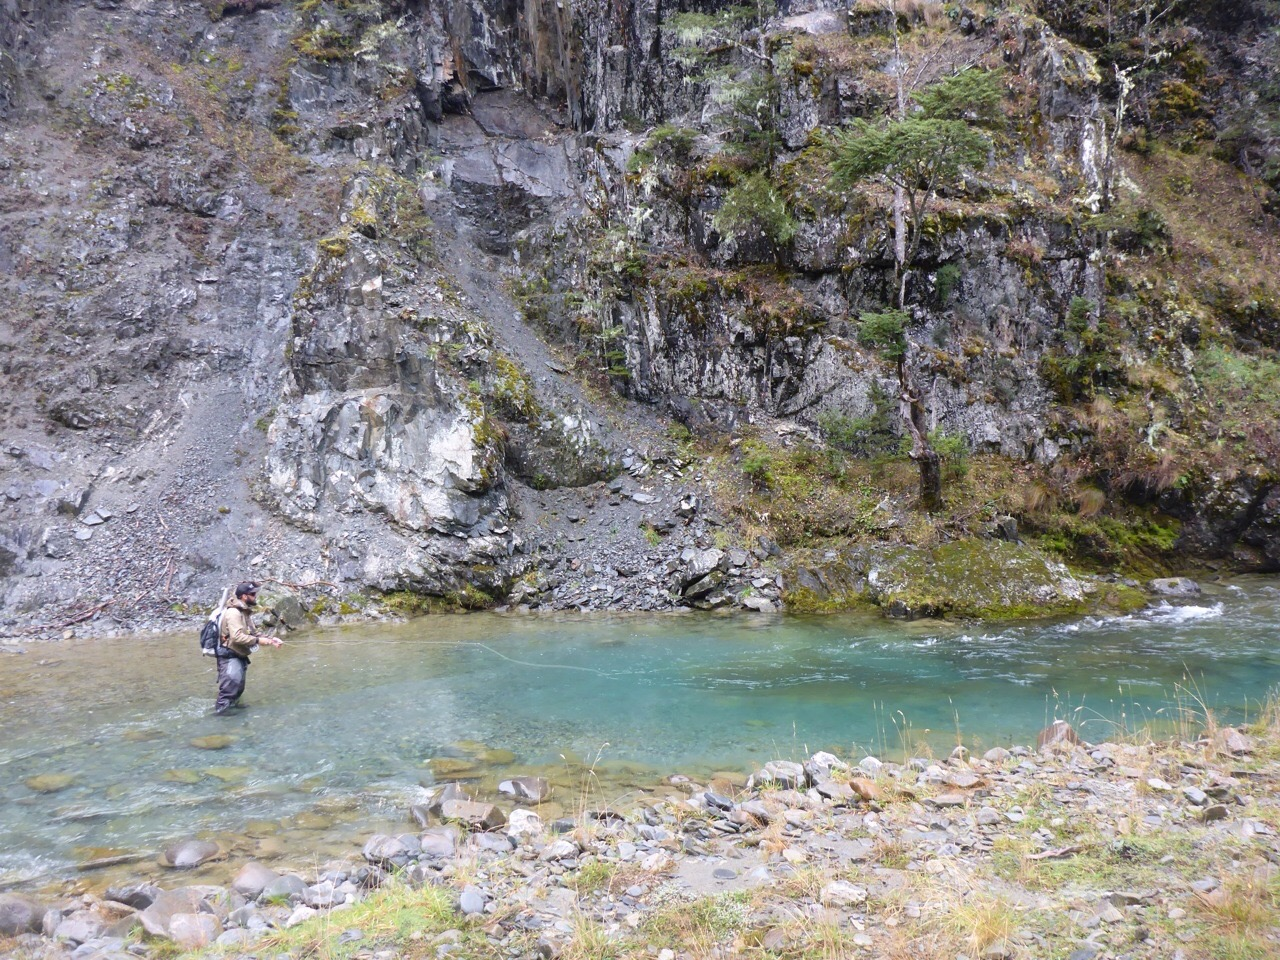 New Zealand back country fly fishing guide Jeff Forsee